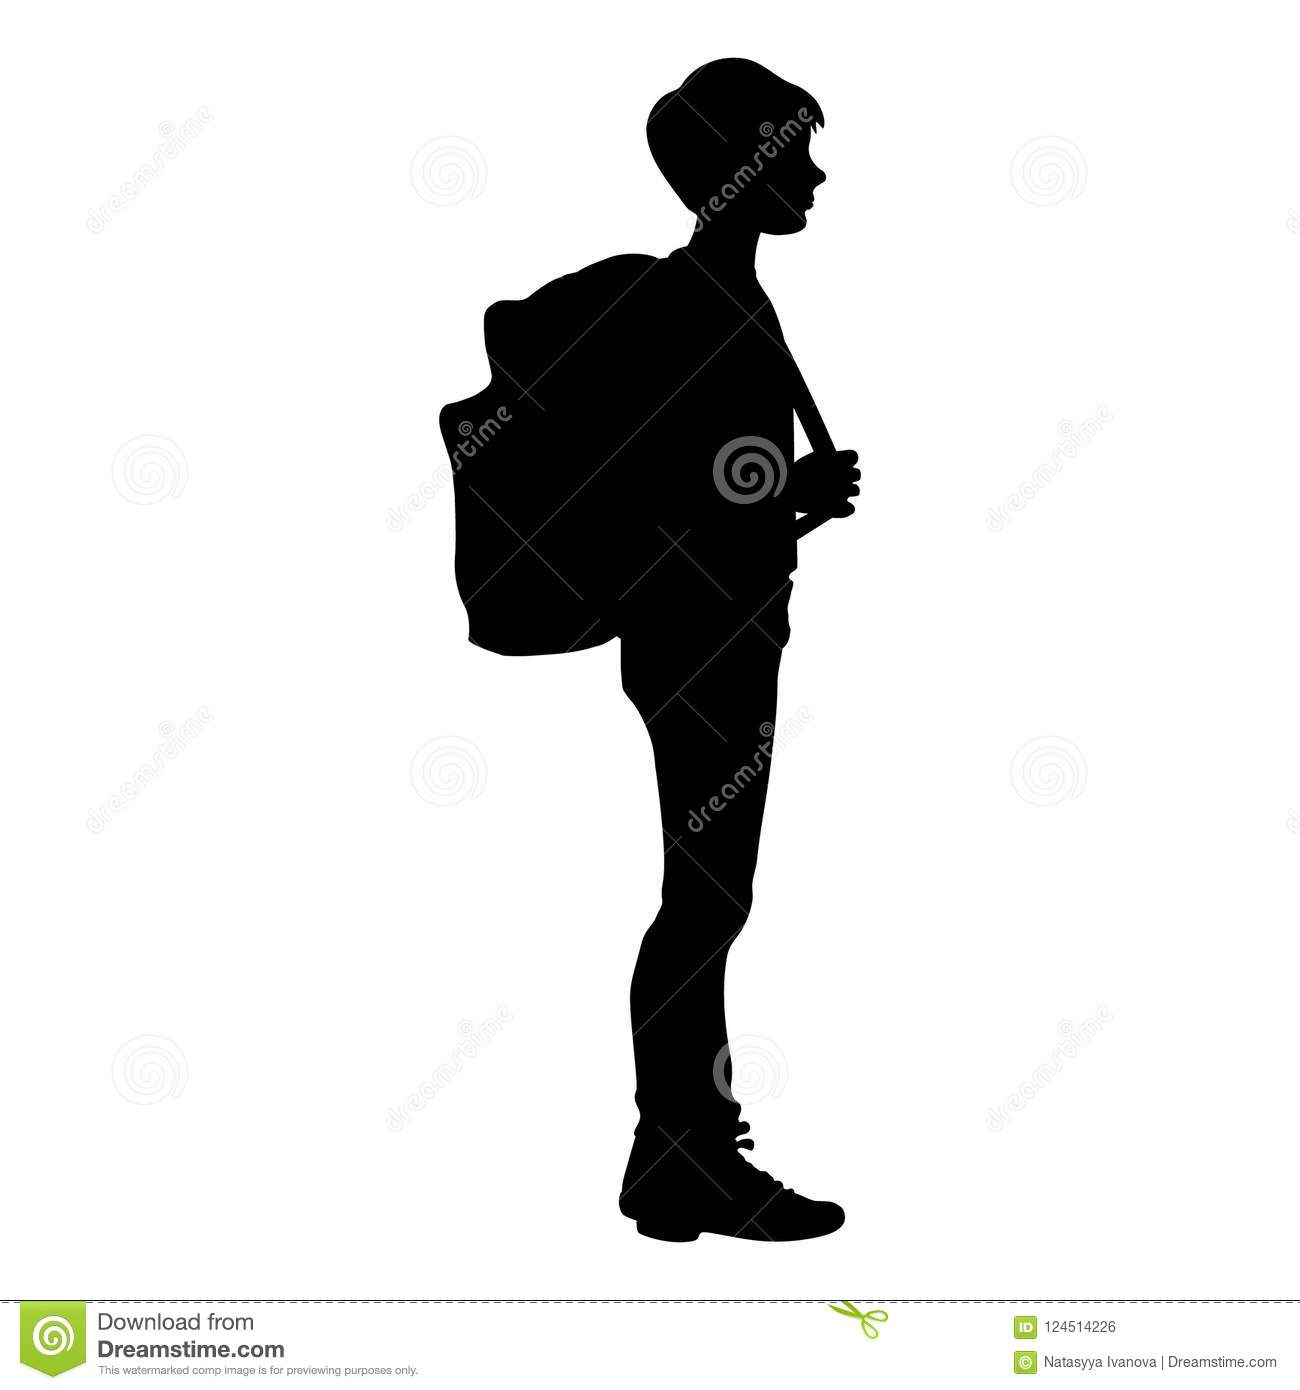 Isolated Silhouette Of A Boy Standing With A School Bag Stock Vector Illustration Of Stay Elementary 124514226 Are you searching for boy silhouette png images or vector? https www dreamstime com isolated silhouette boy standing school bag illustration image124514226